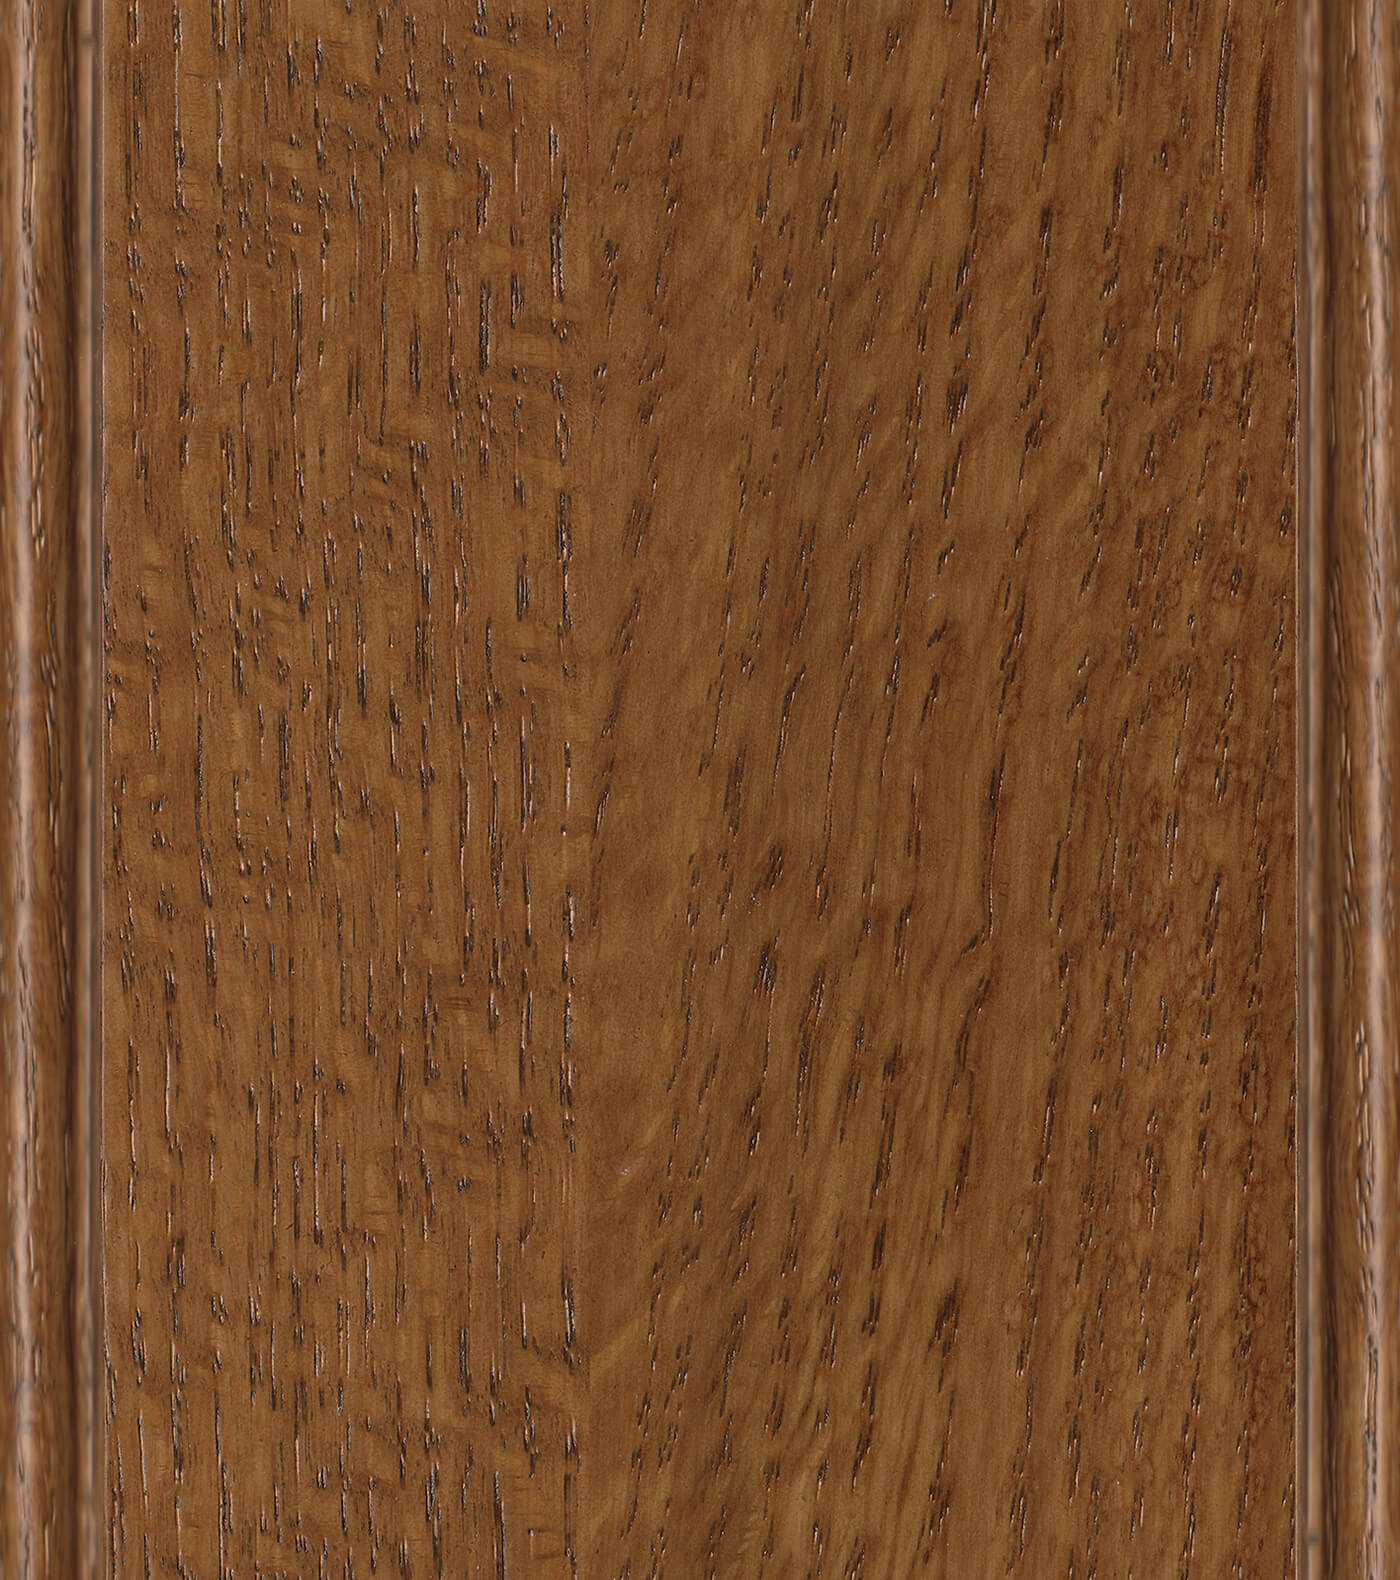 Toast Stain on Red Oak or Quarter-Sawn Red Oak